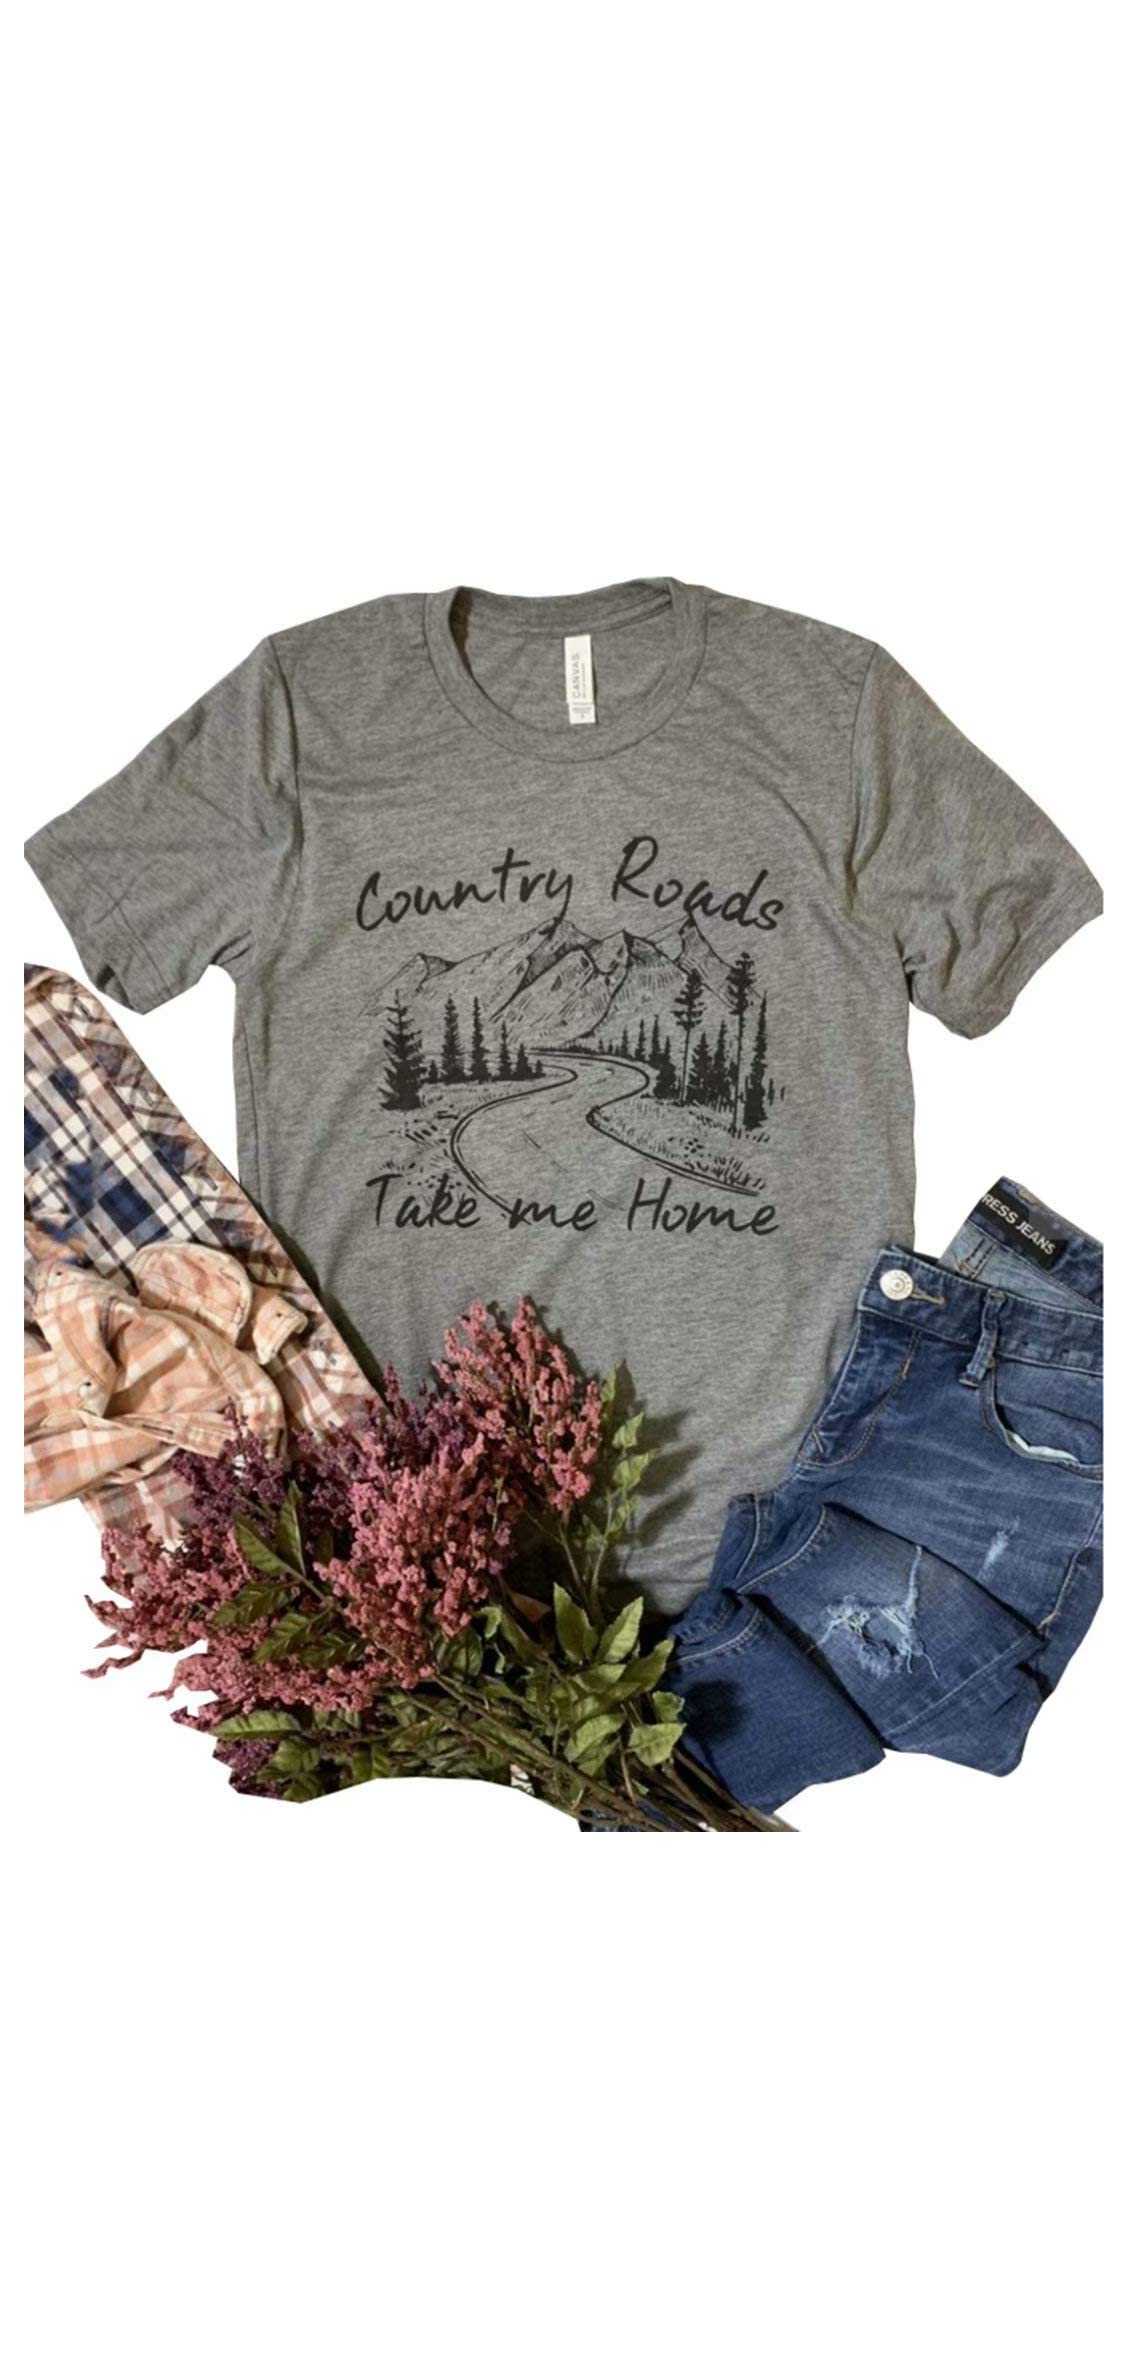 Women's Country Roads Take Me Home Letter Print Graphic T